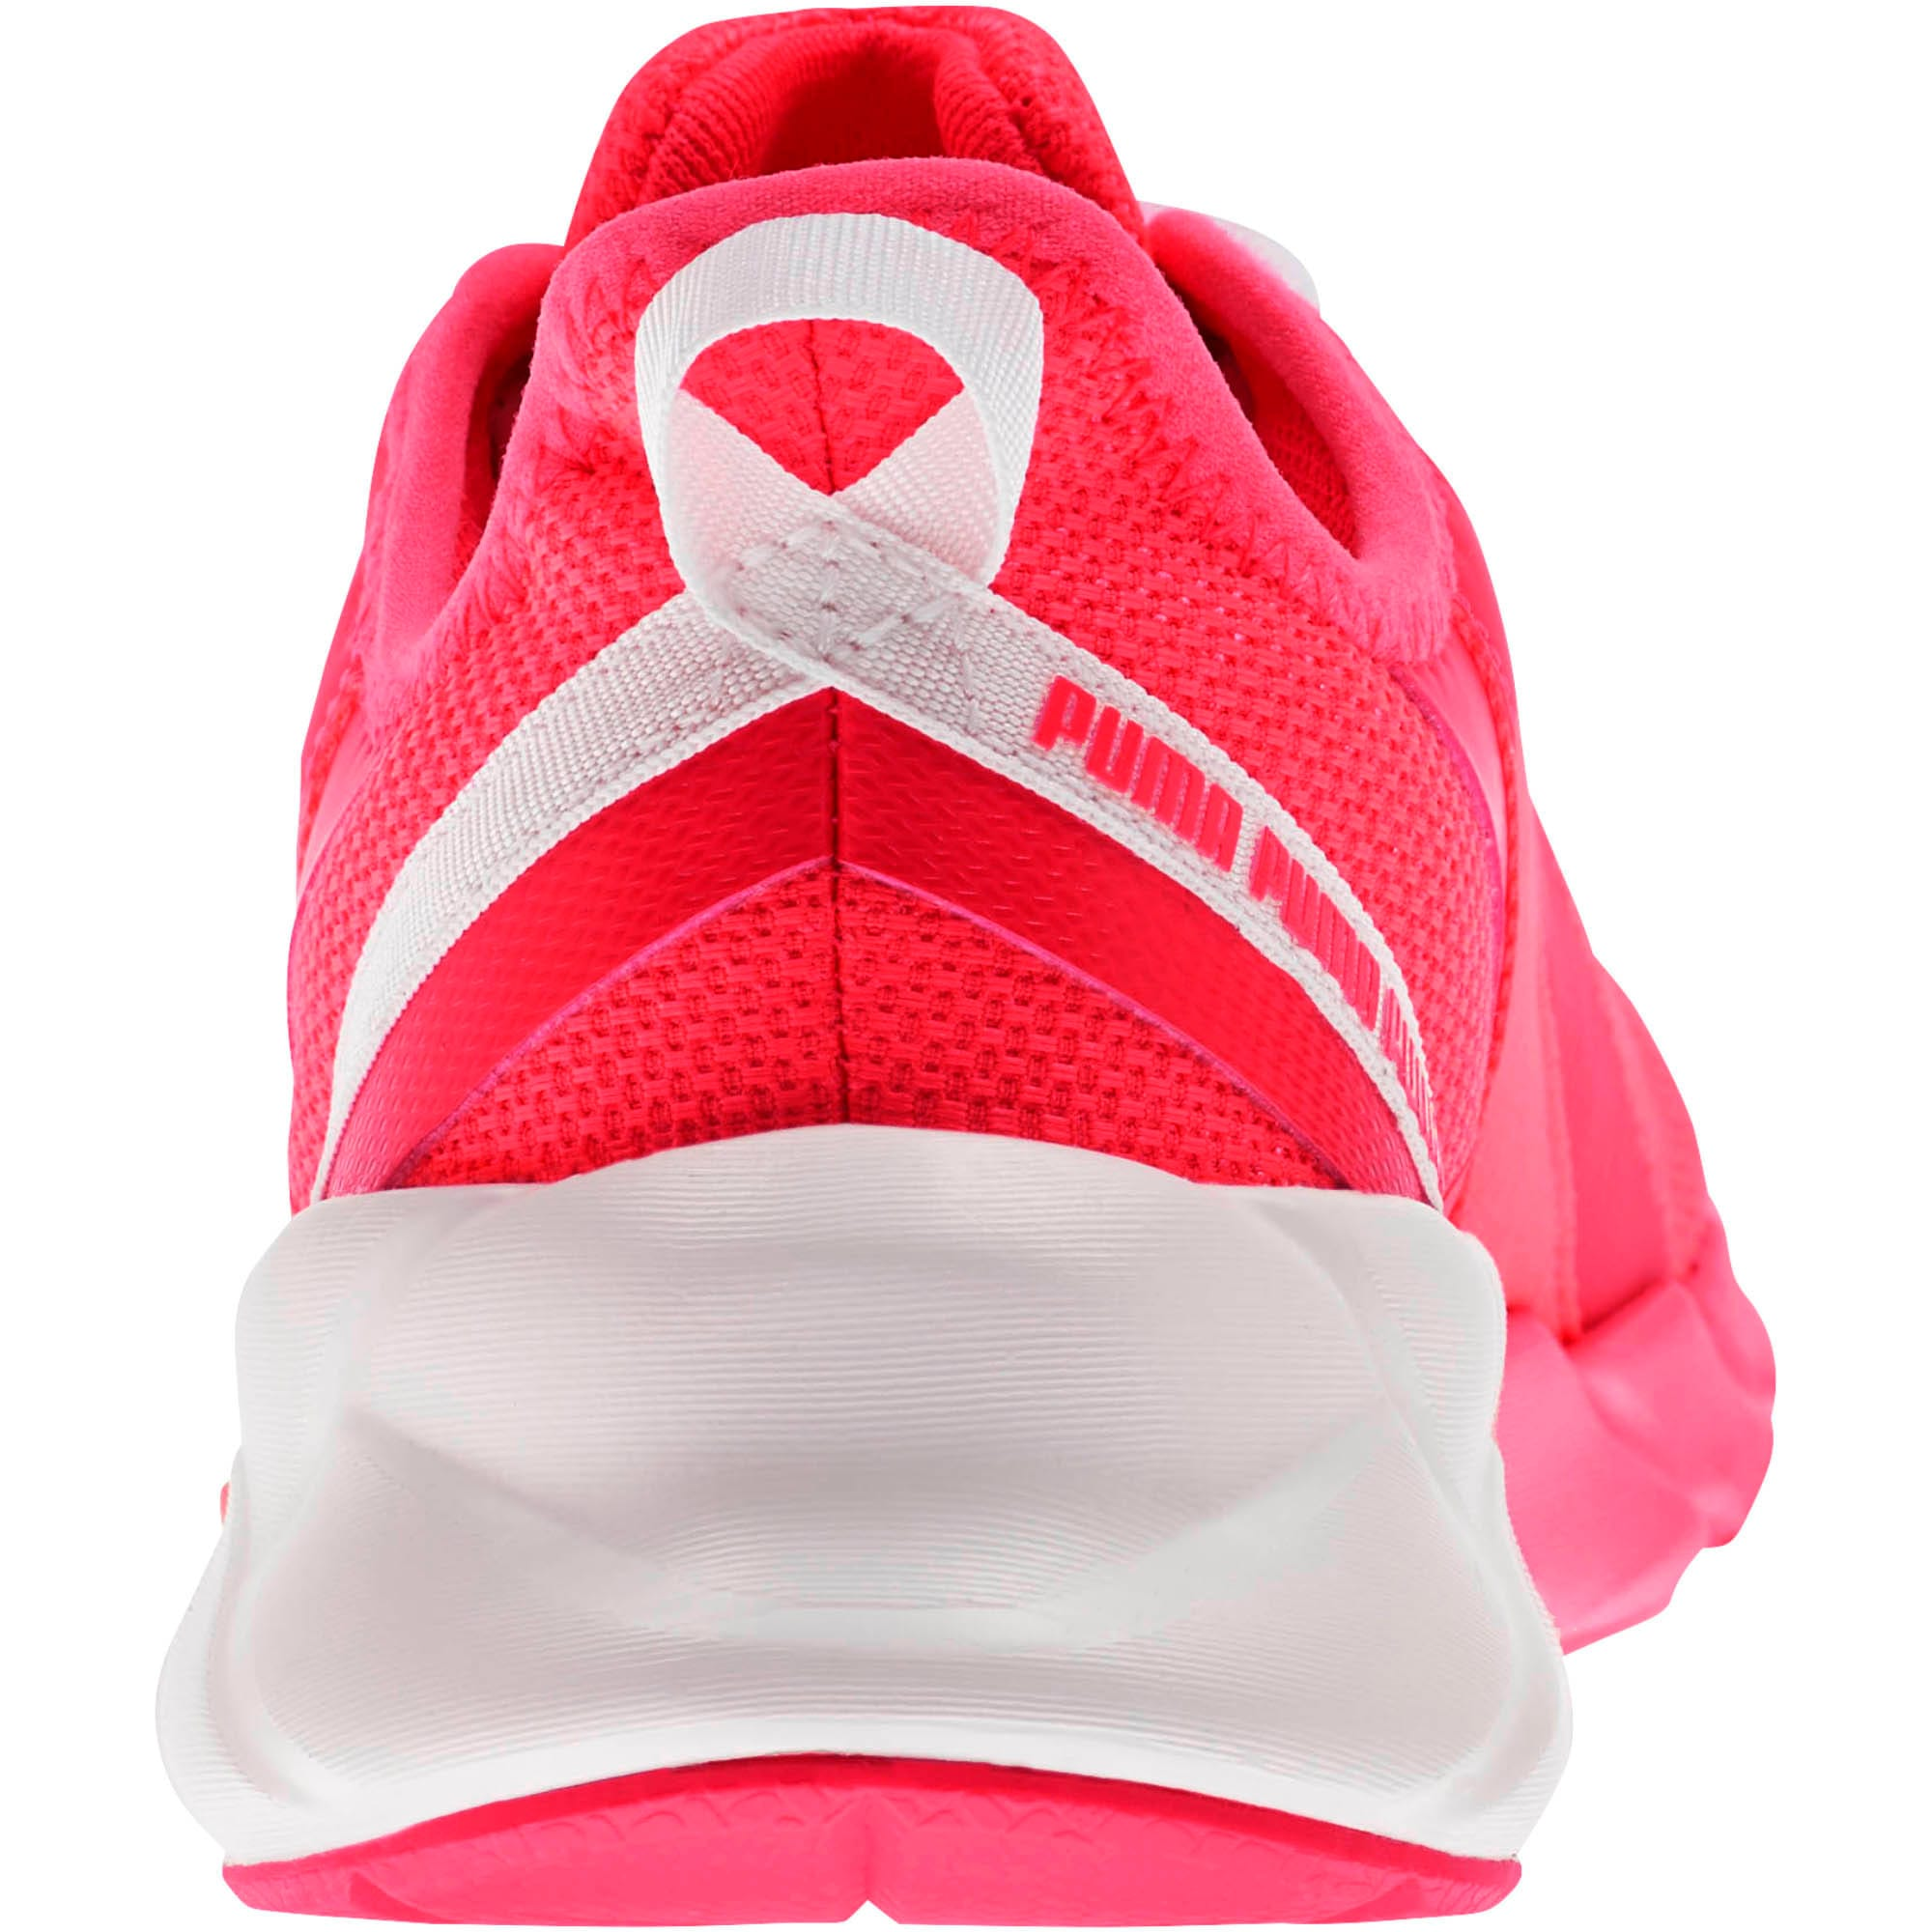 Thumbnail 3 of Weave XT Fade Women's Training Shoes, Pink Alert-Puma White, medium